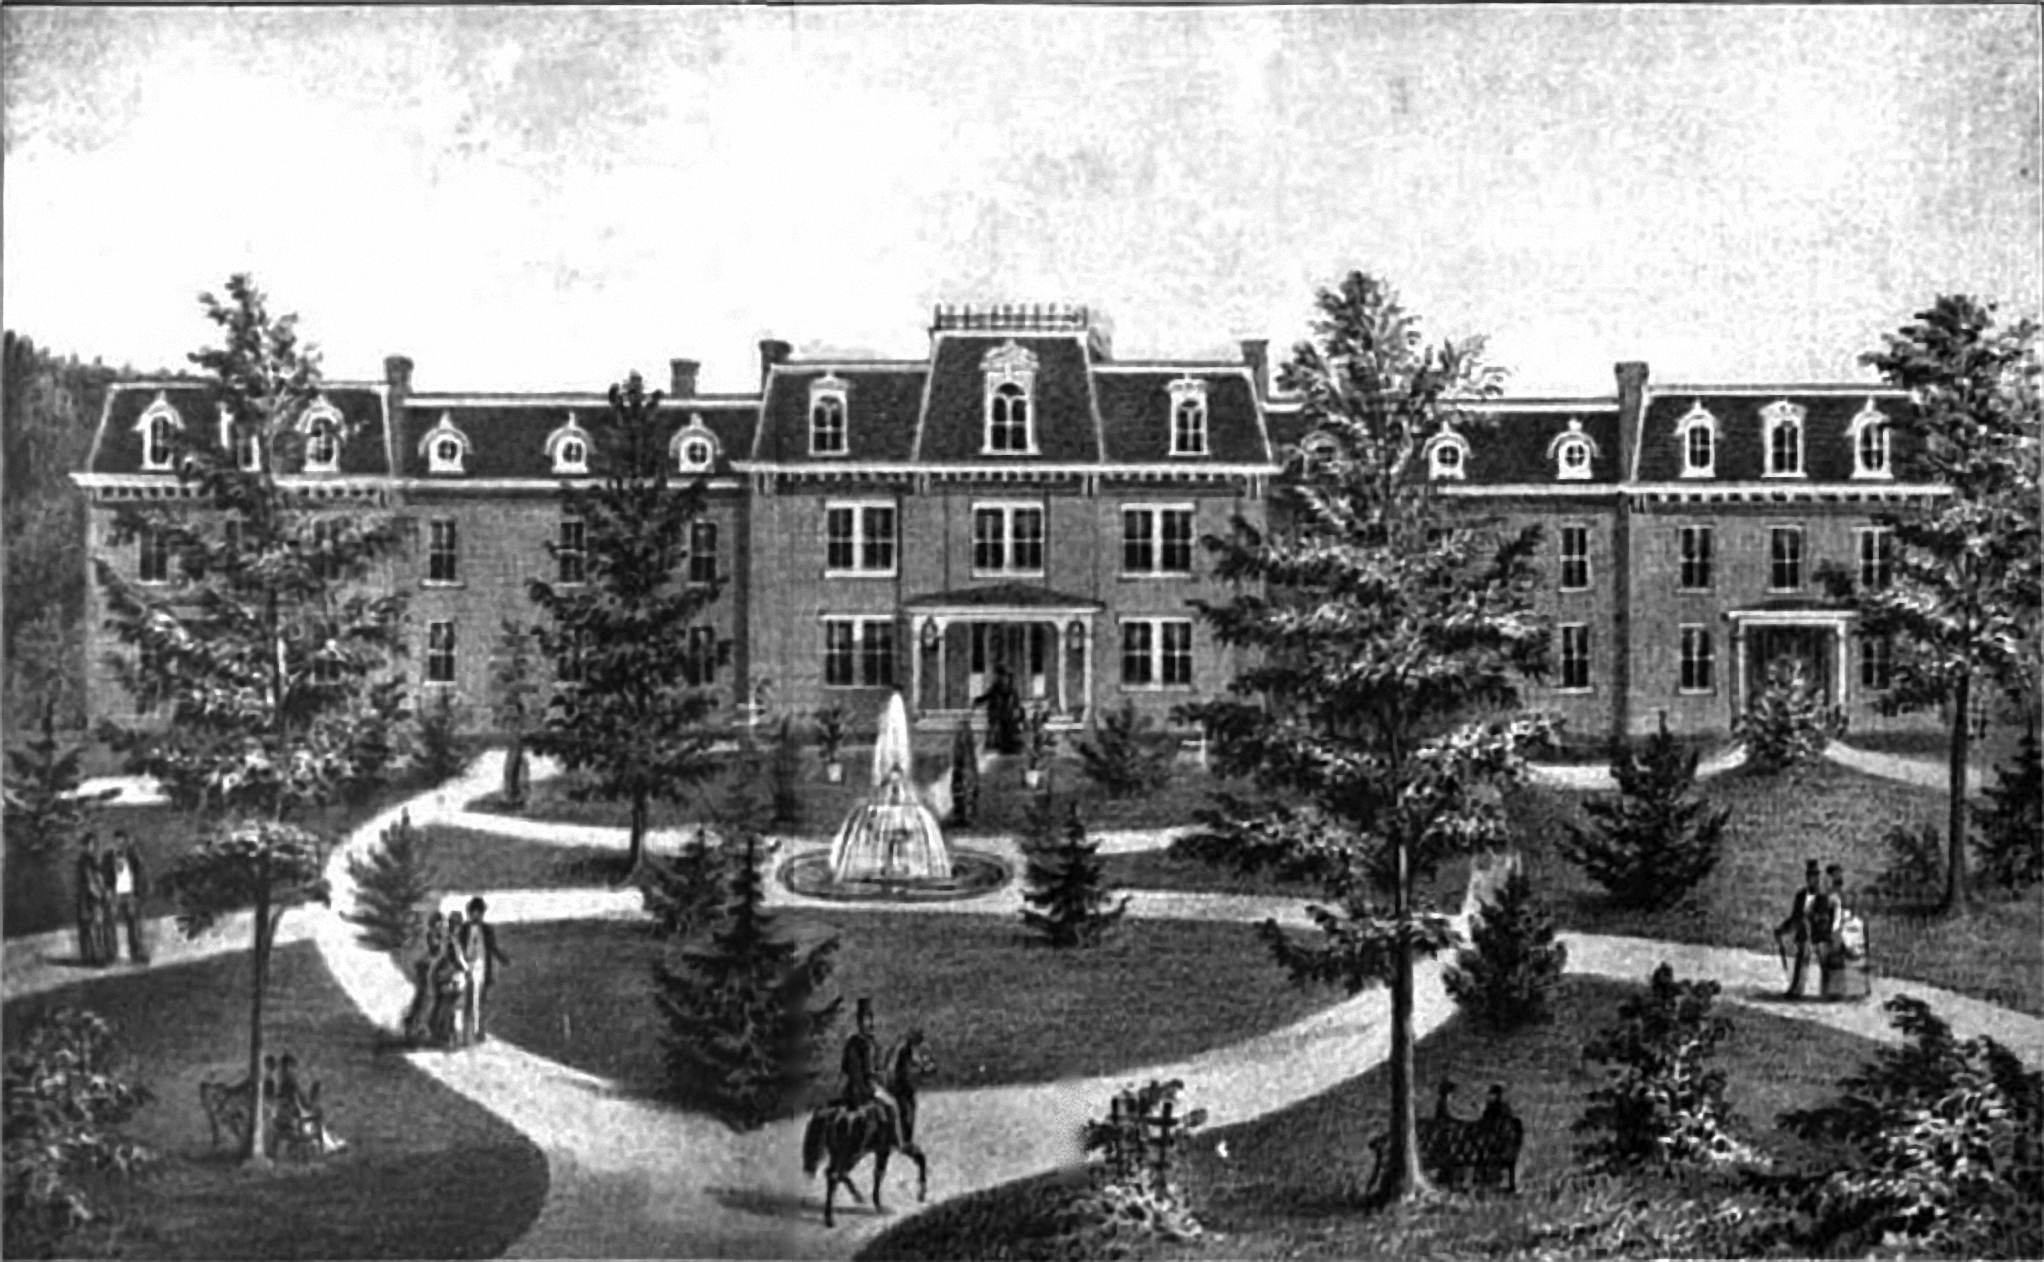 Wv colored childrens home - West Virginia Schools For The Deaf And Blind Engraving Jpg